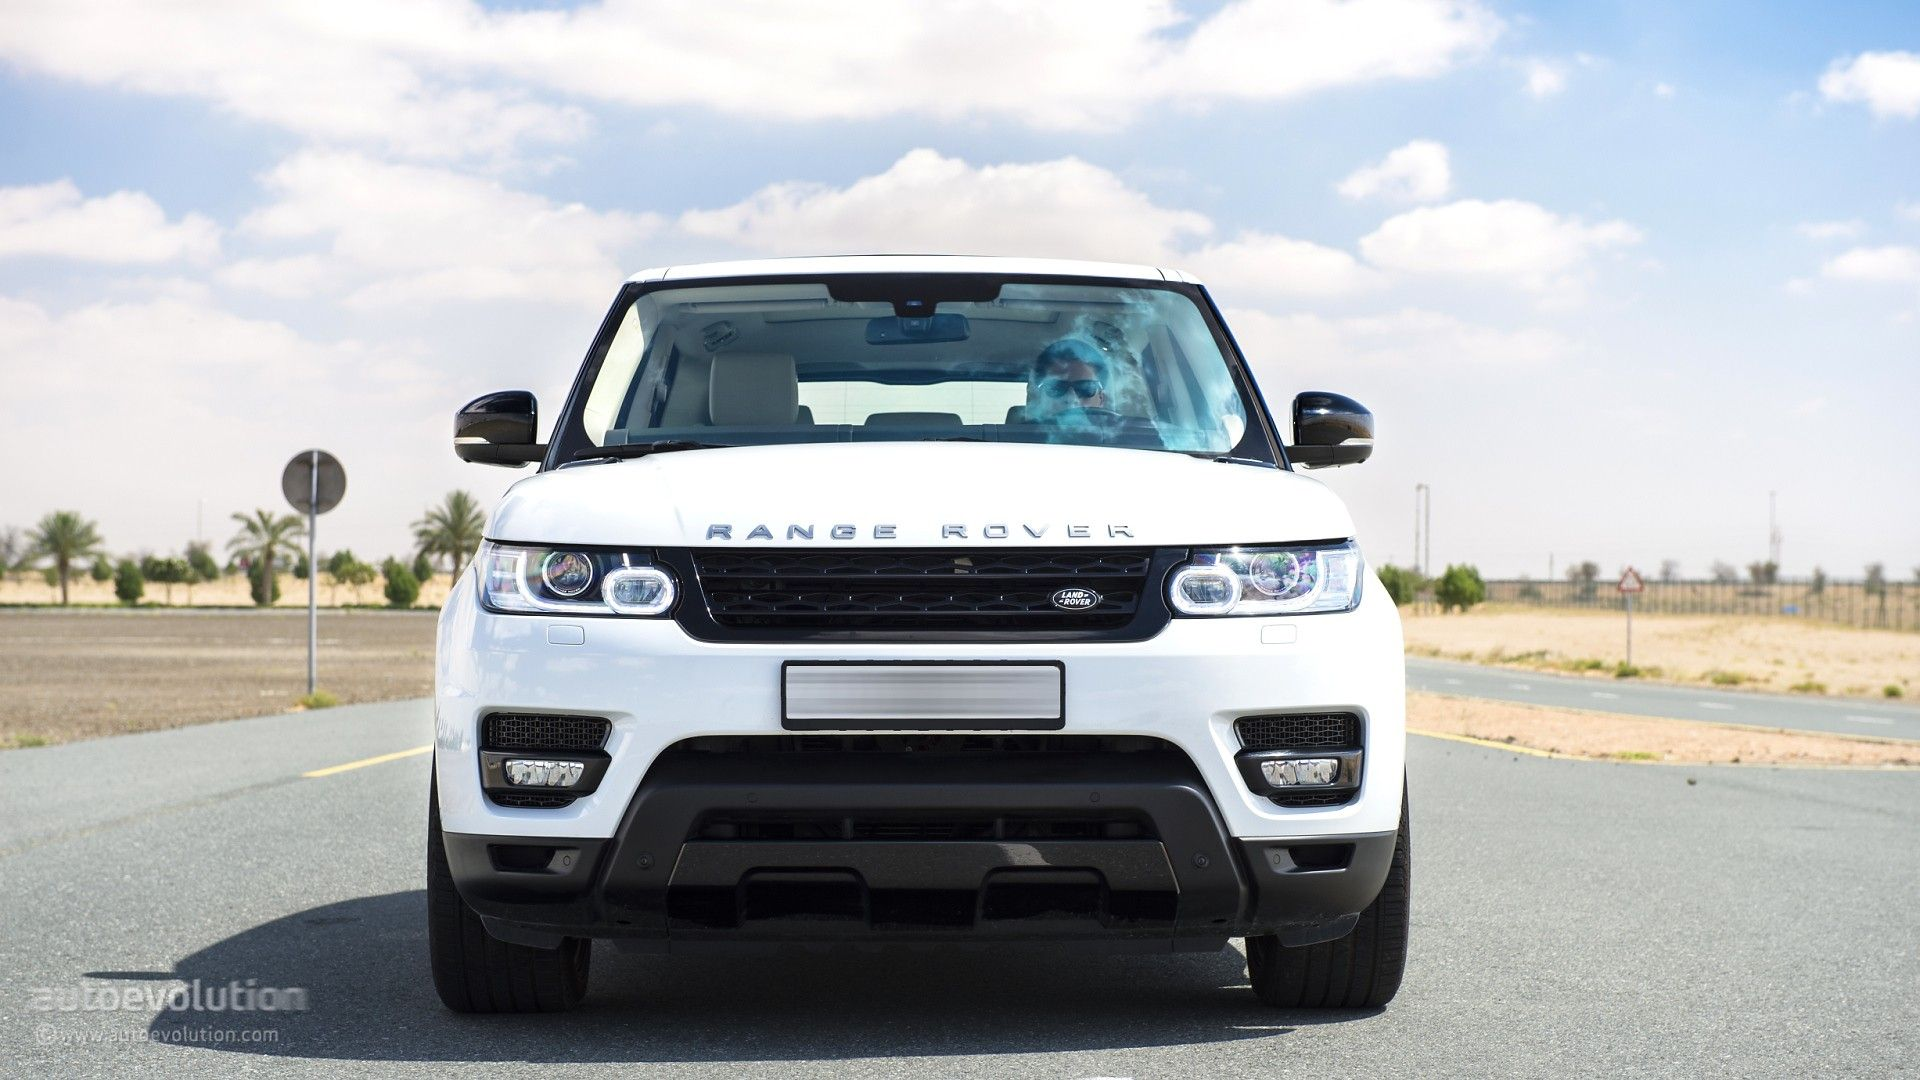 2015 Range Rover Sport Supercharged Review oevolution